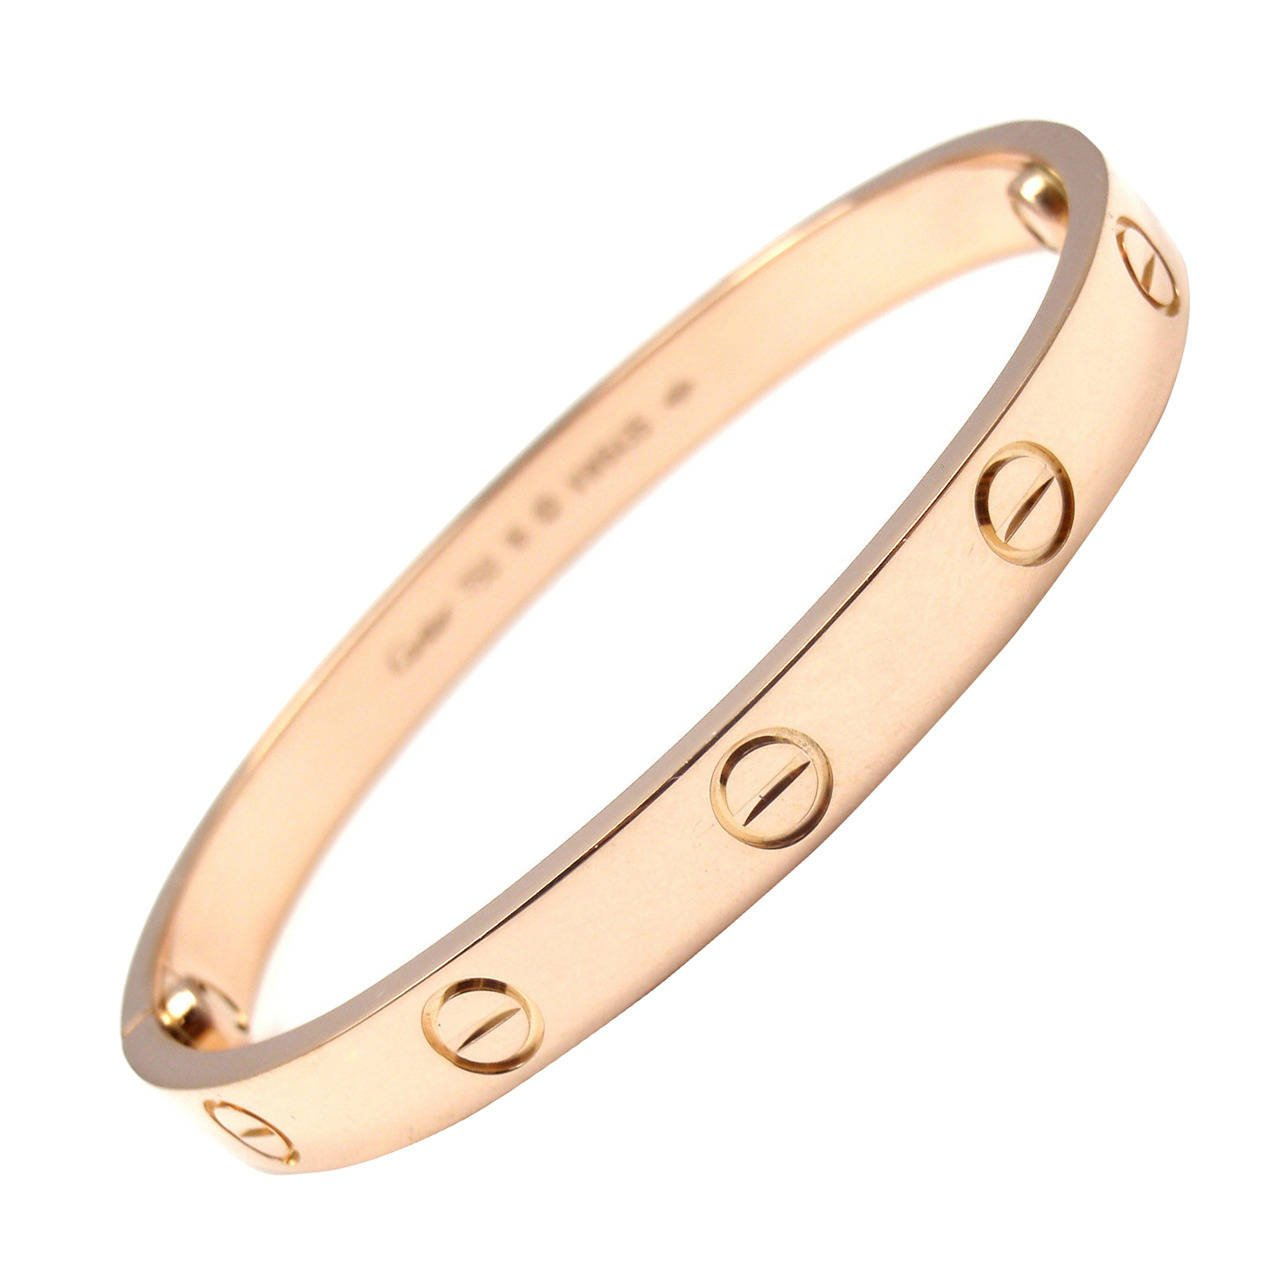 cartier love rose gold bangle bracelet 1 armevvn